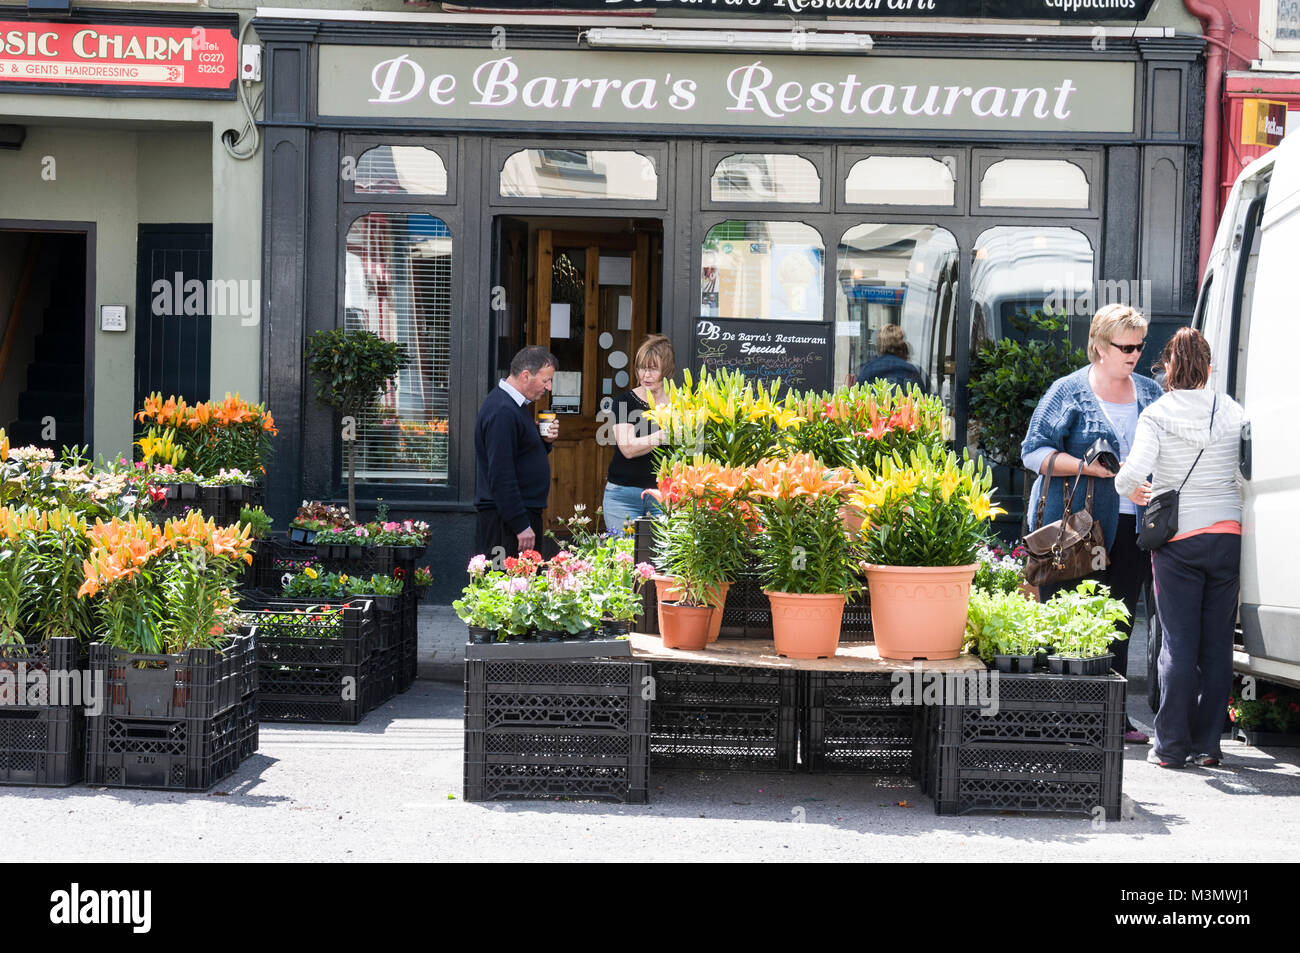 A florist market stall in Bantry, Southern Ireland - Stock Image